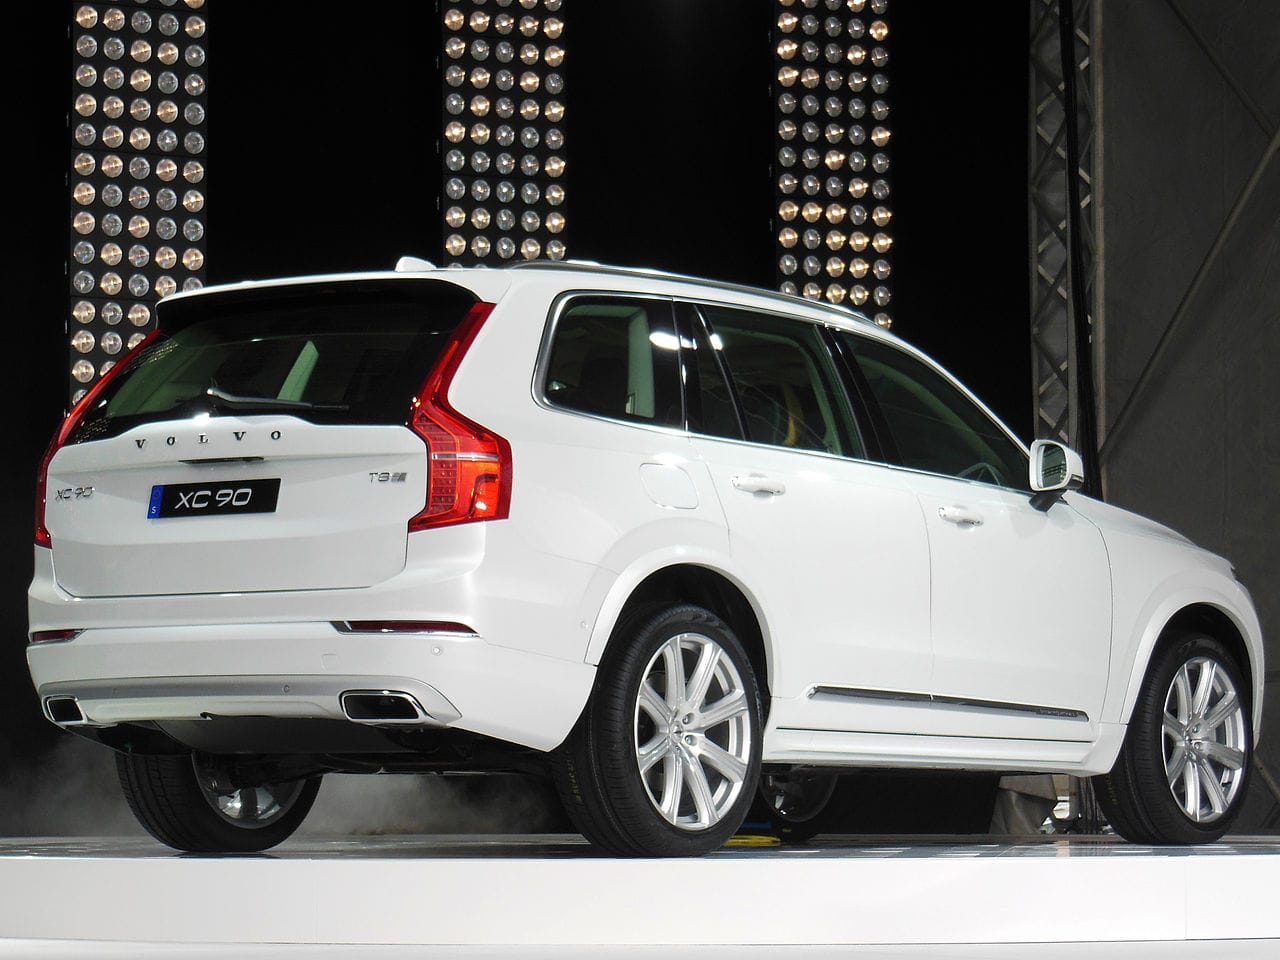 Volvo XC90 II Widescreen for desktop